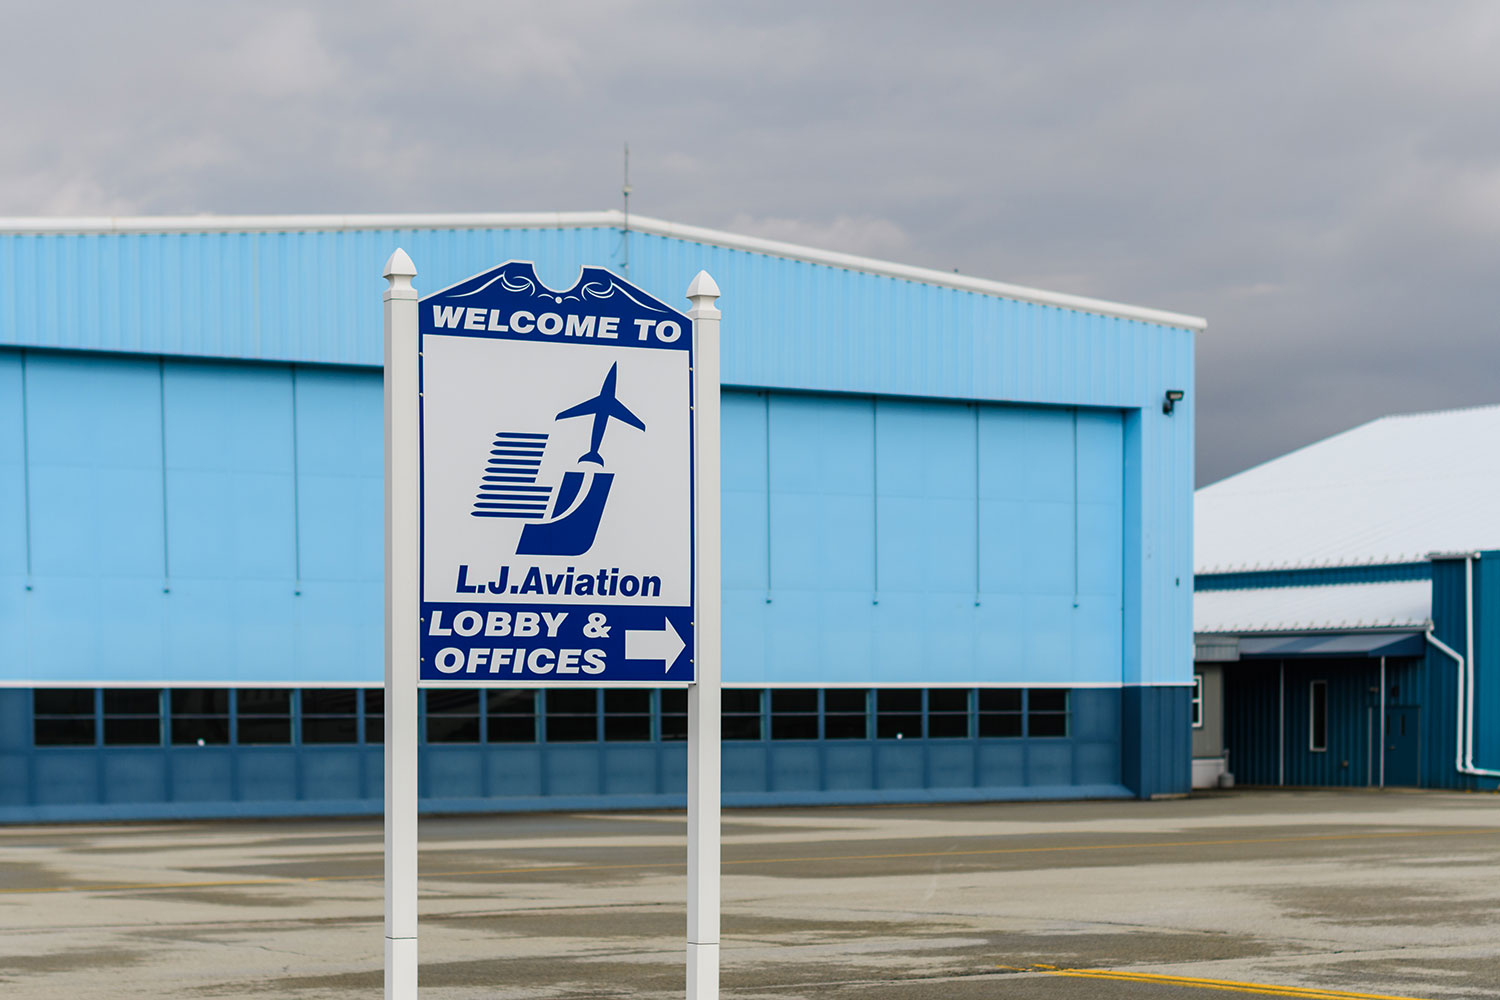 L.J. Aviation's headquarters location offers a wonderful location and a family-oriented atmosphere to prospective employees.